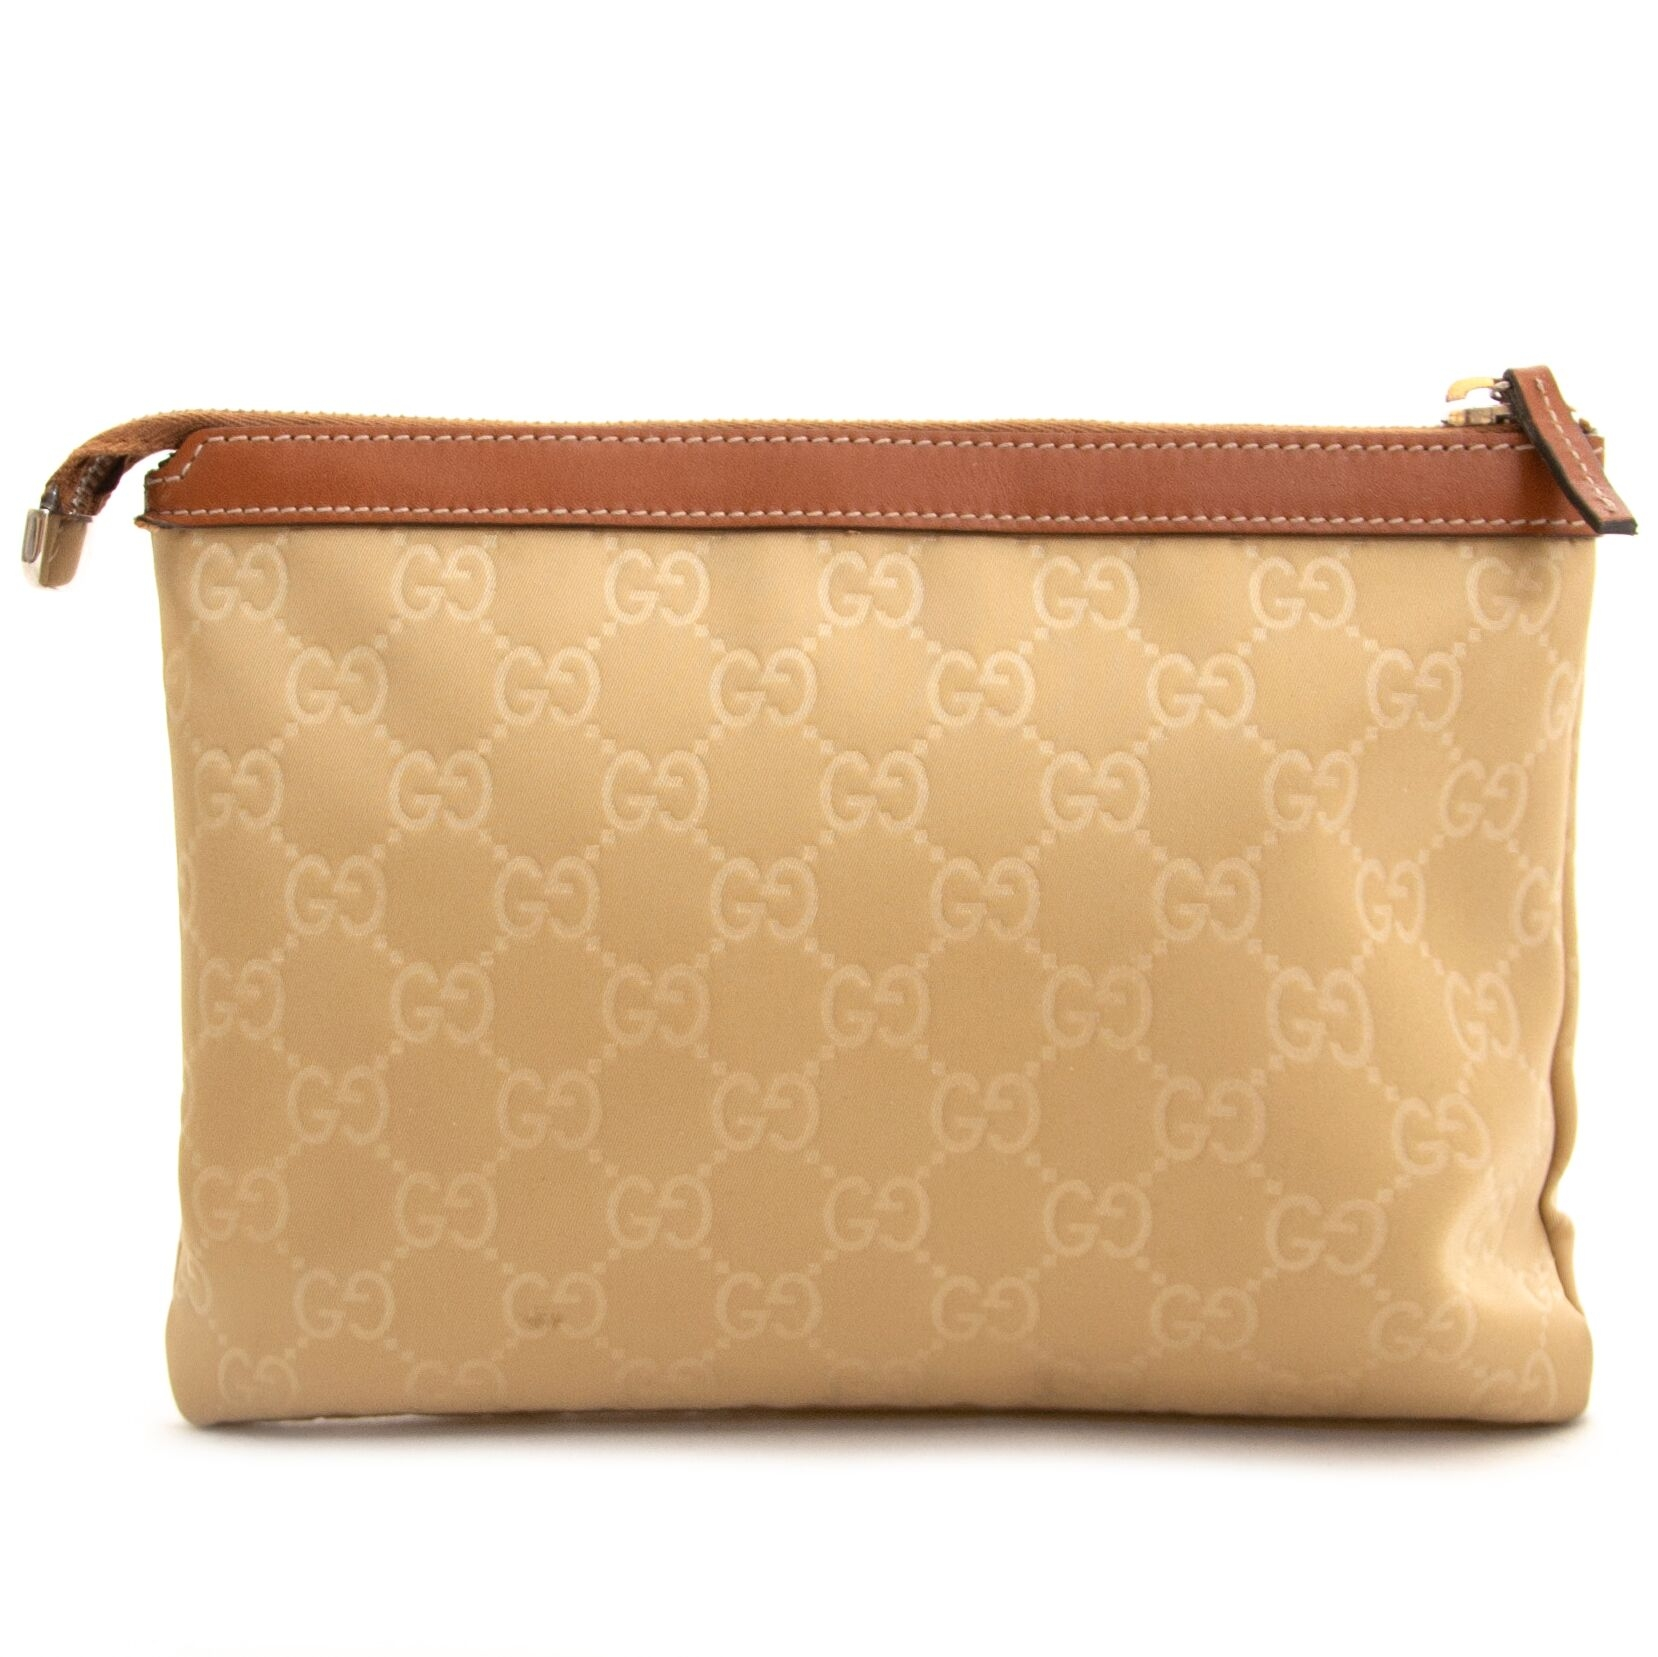 Buy secondhand Gucci cosmetic case at Labellov.